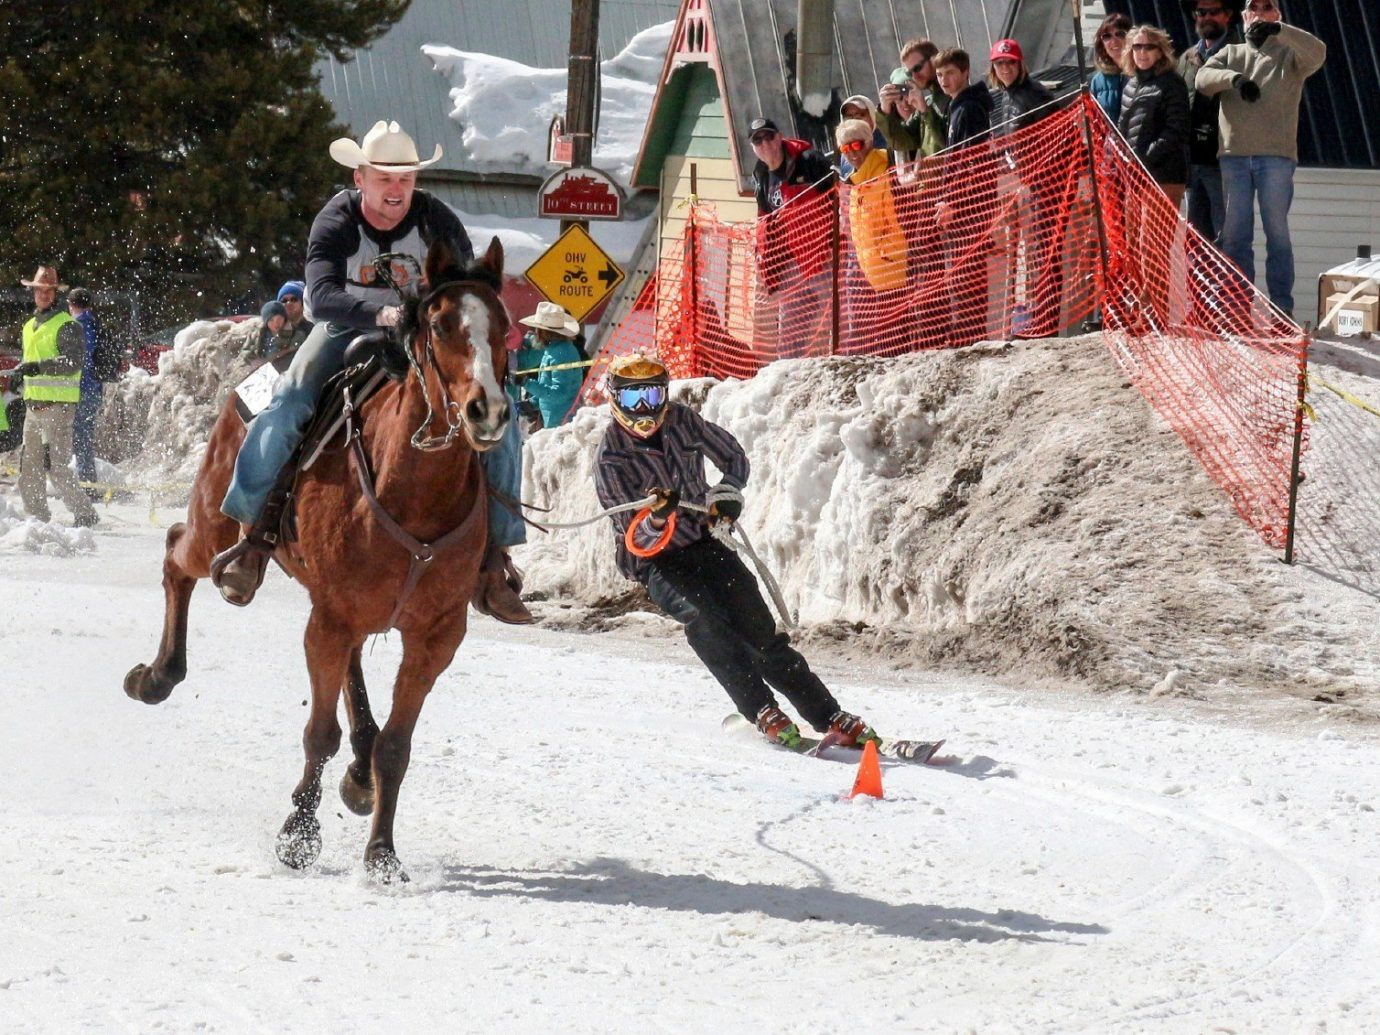 Offbeat Trip Ideas outdoor snow sports animal sports equestrian sport equestrianism tradition racing